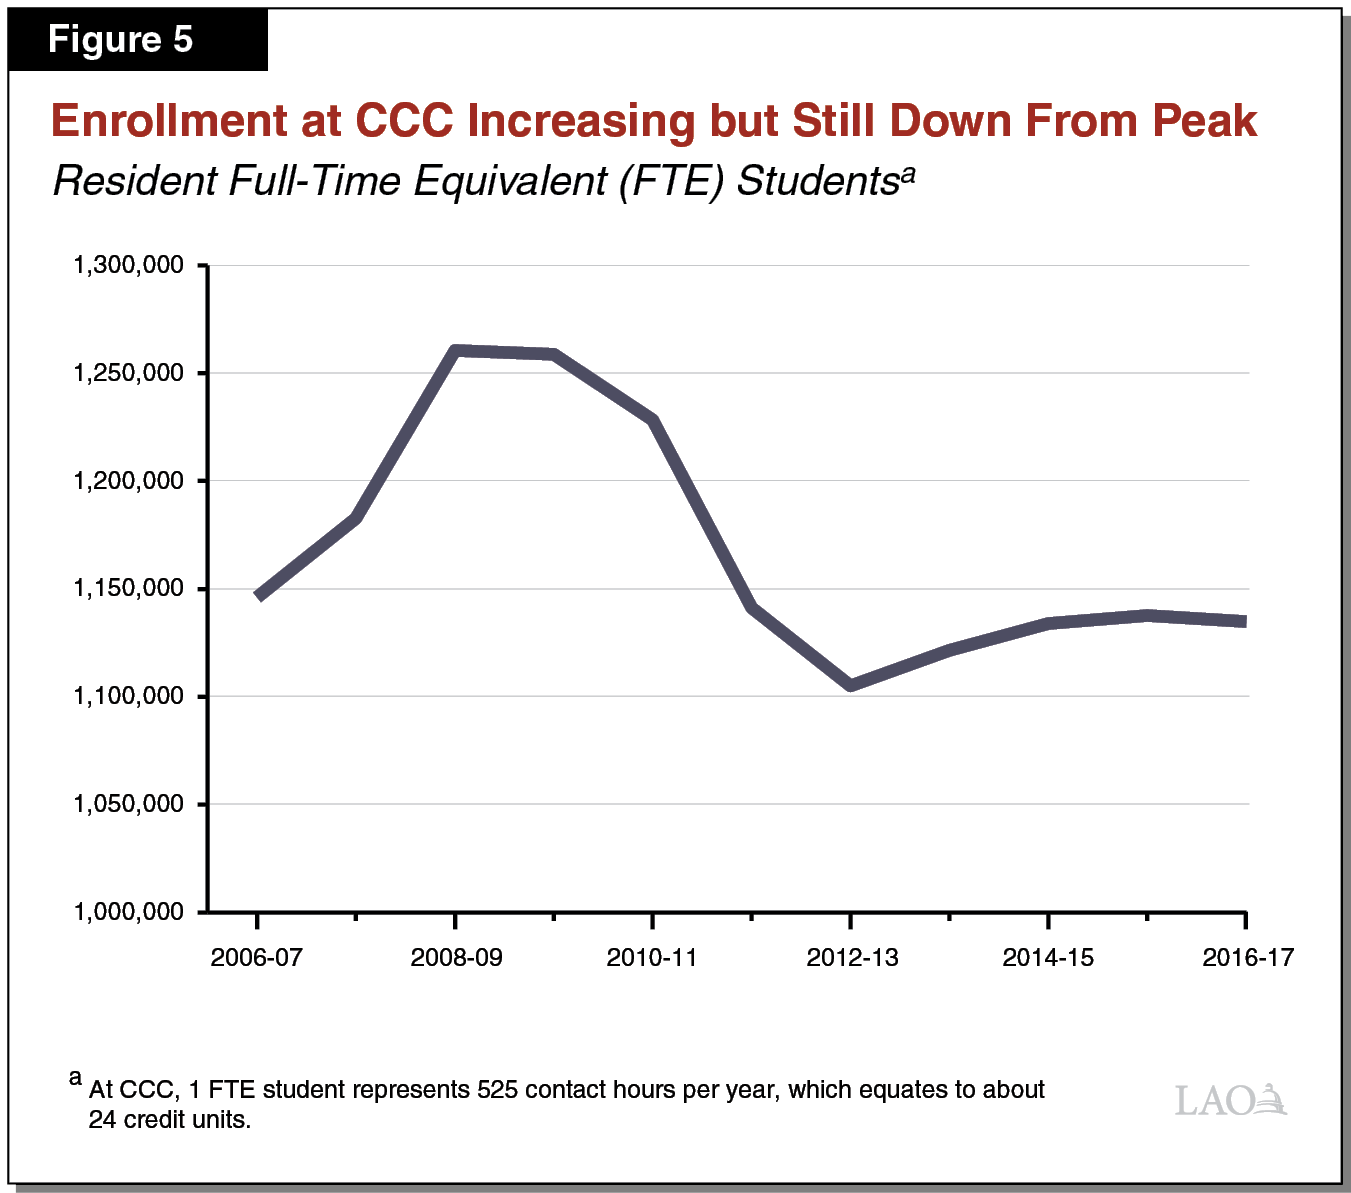 Figure 5 - Enrollment at CCC Increasing But Still Down from Peak